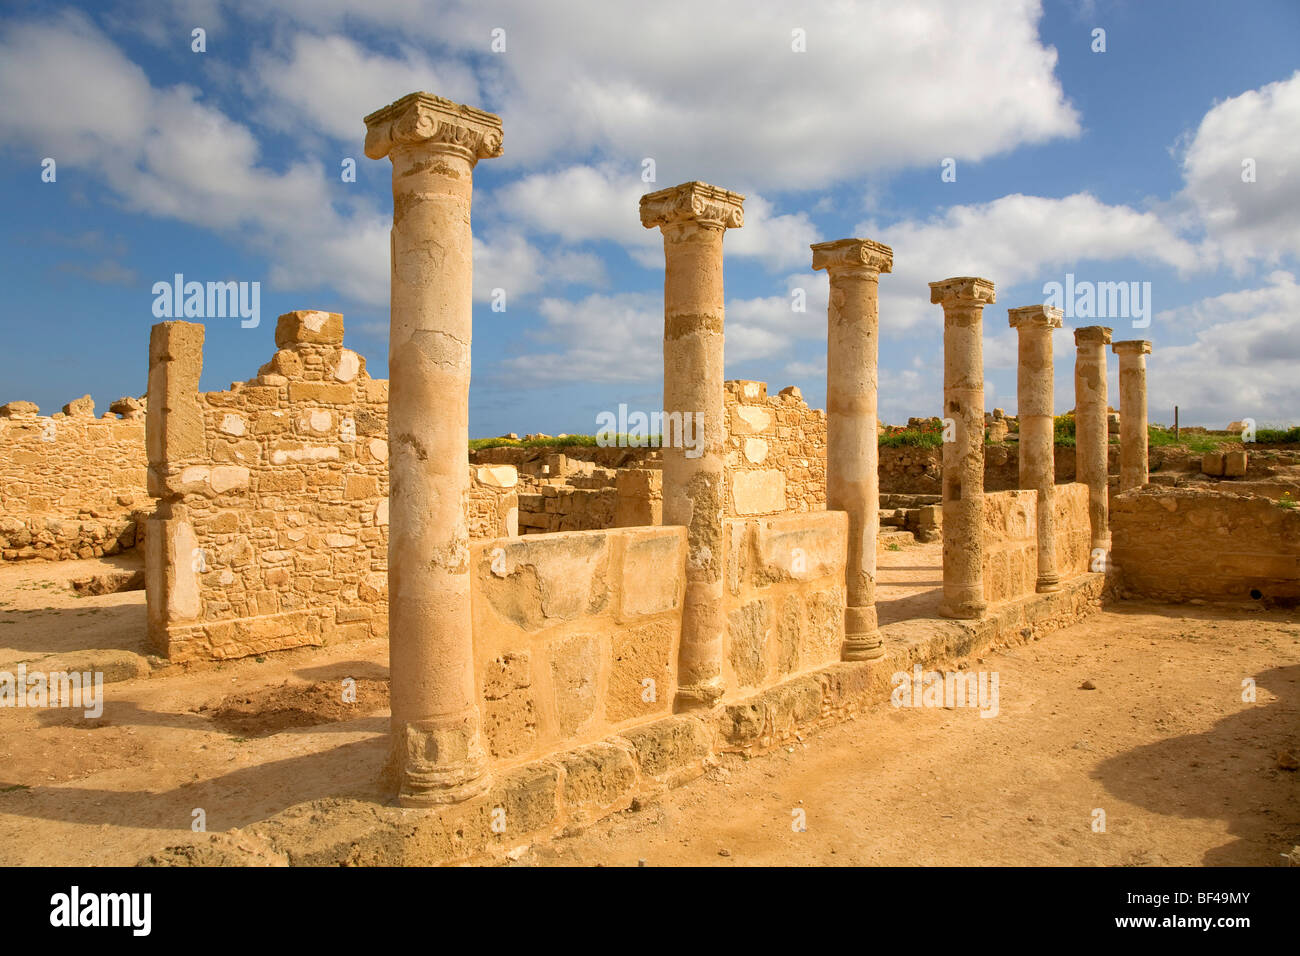 Archaeological site of Kato Pafos, UNESCO World Heritage Site, Paphos, Cyprus, Greece, Europe - Stock Image